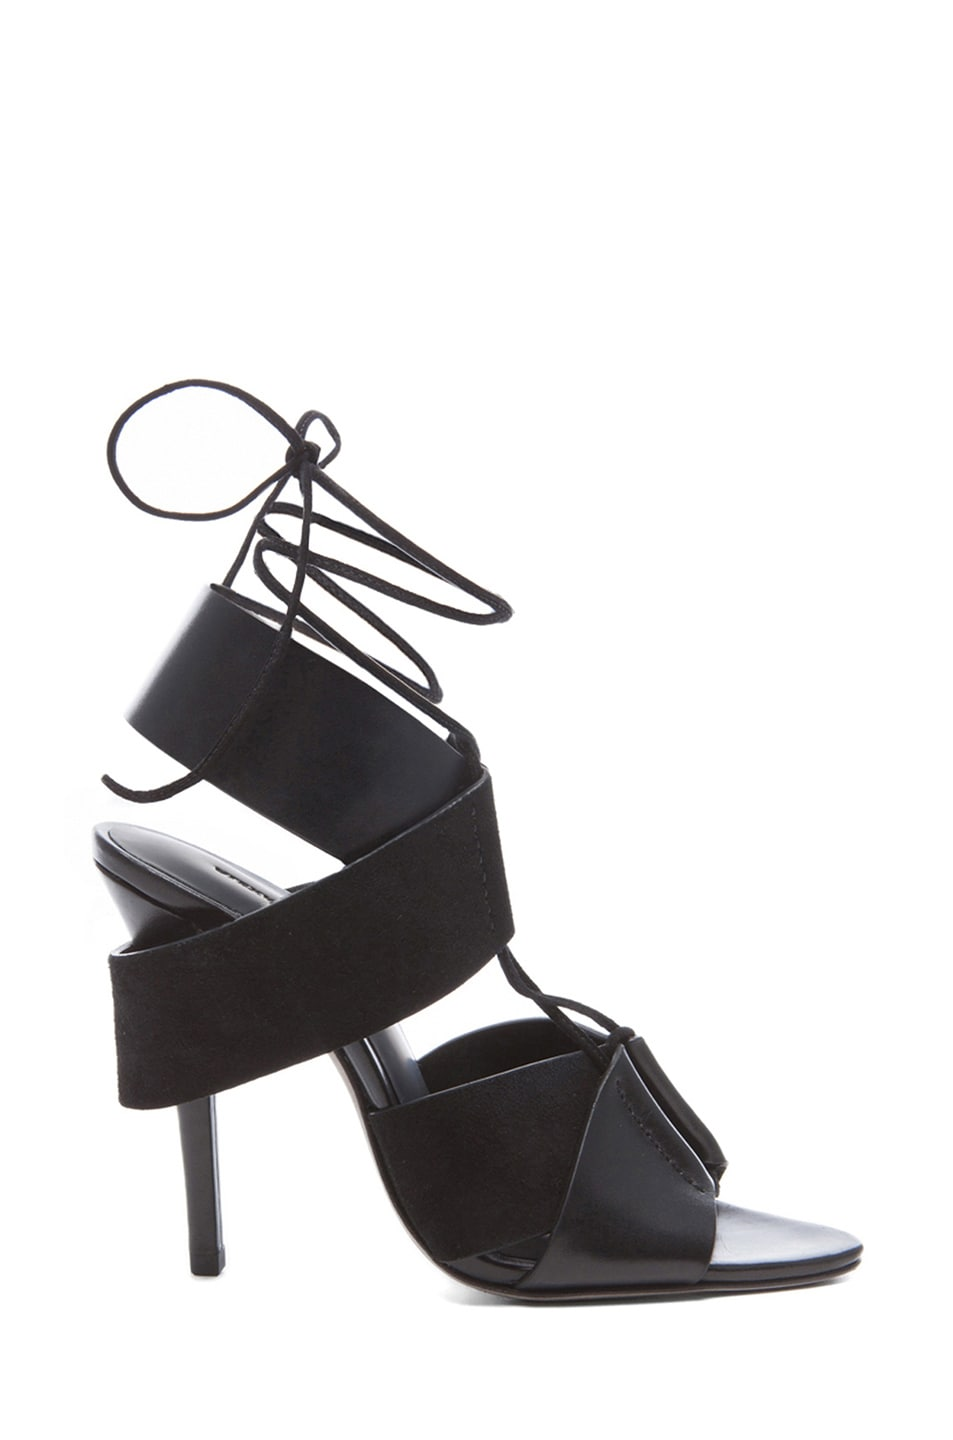 Image 1 of Alexander Wang Malgosia Leather & Suede Sandals in Black